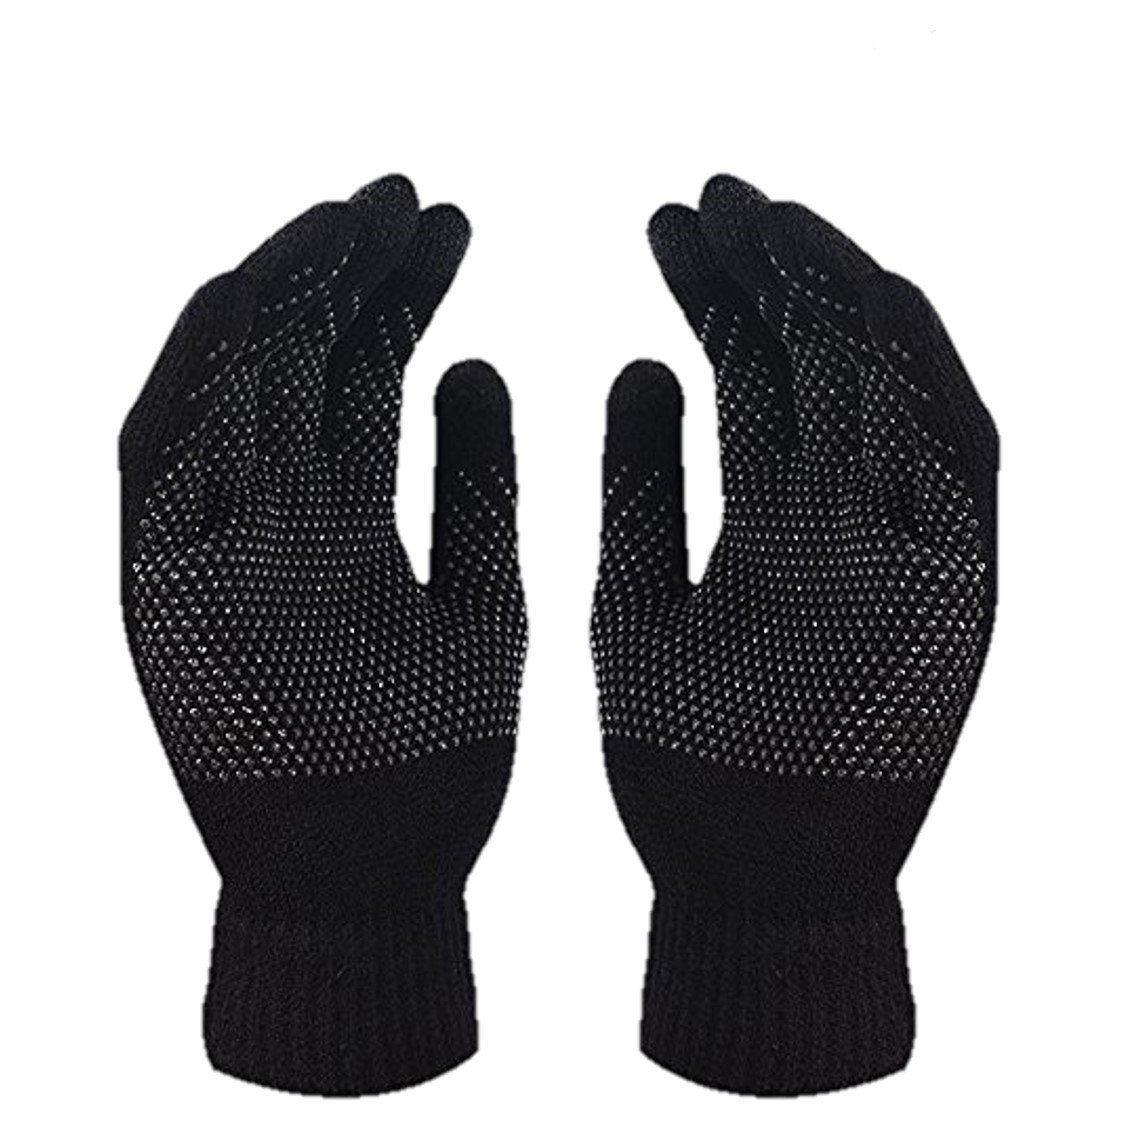 Winter Coral Fleece Touch Screen Gloves Soft Plush Thermal Warm Ski Snowboard Snow Mittens Christmas Gift for Women Girls Boys iHomey